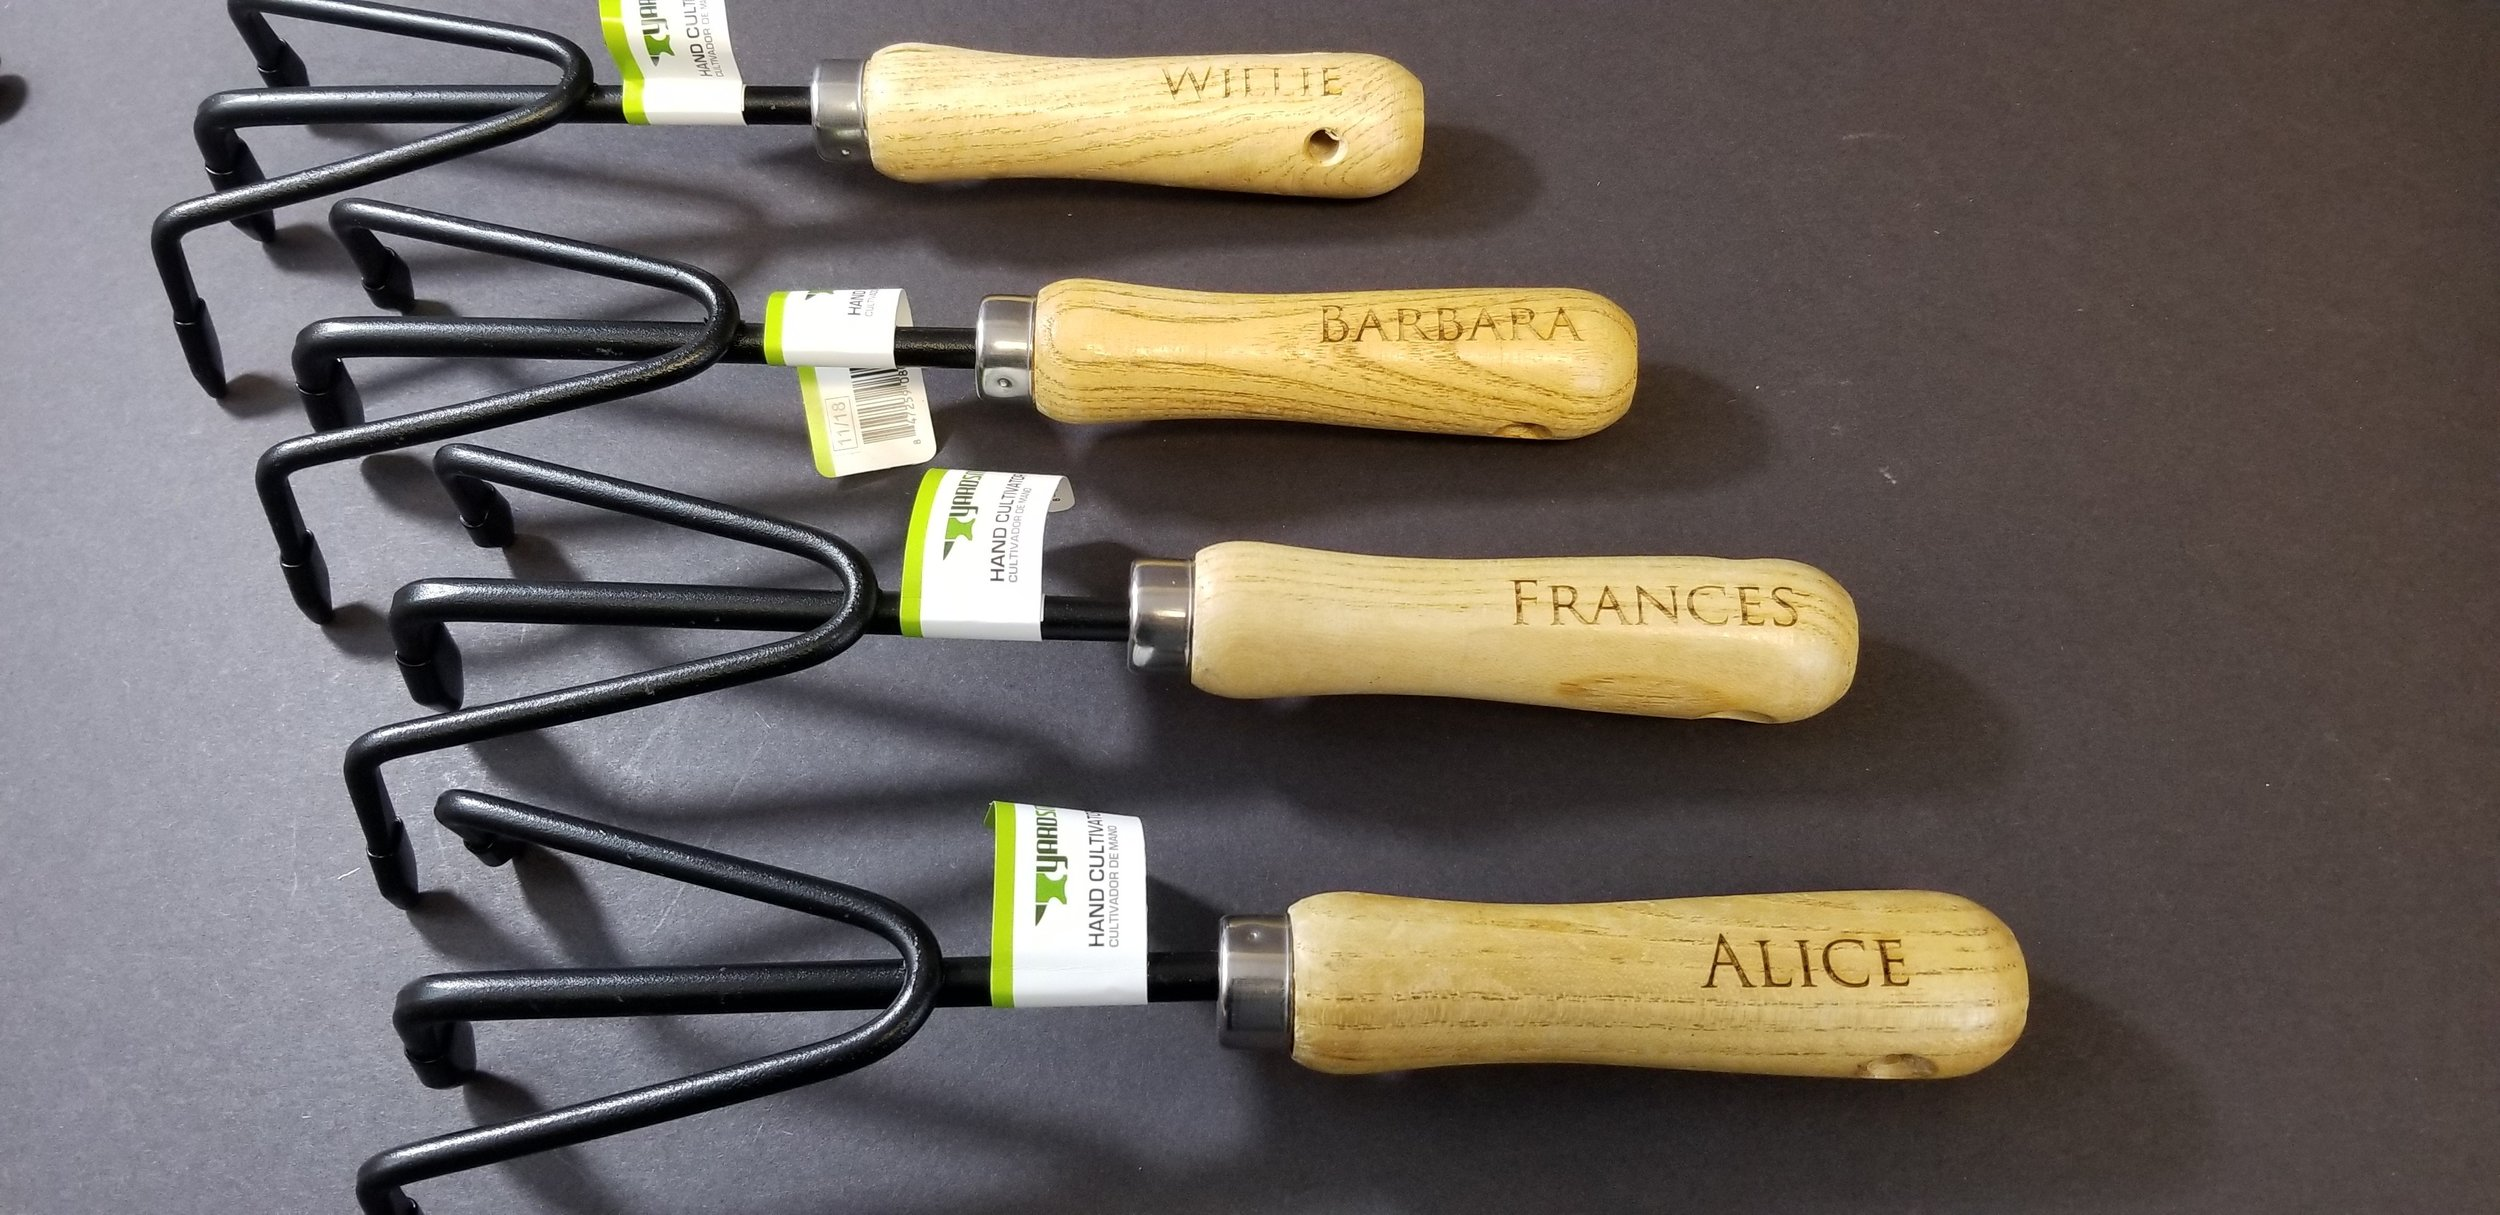 Personalized Engraved Gardening Tools - Laser Engraved Gardening Tools - Personalized Gifts - Unique Gifts - Engrave It Houston